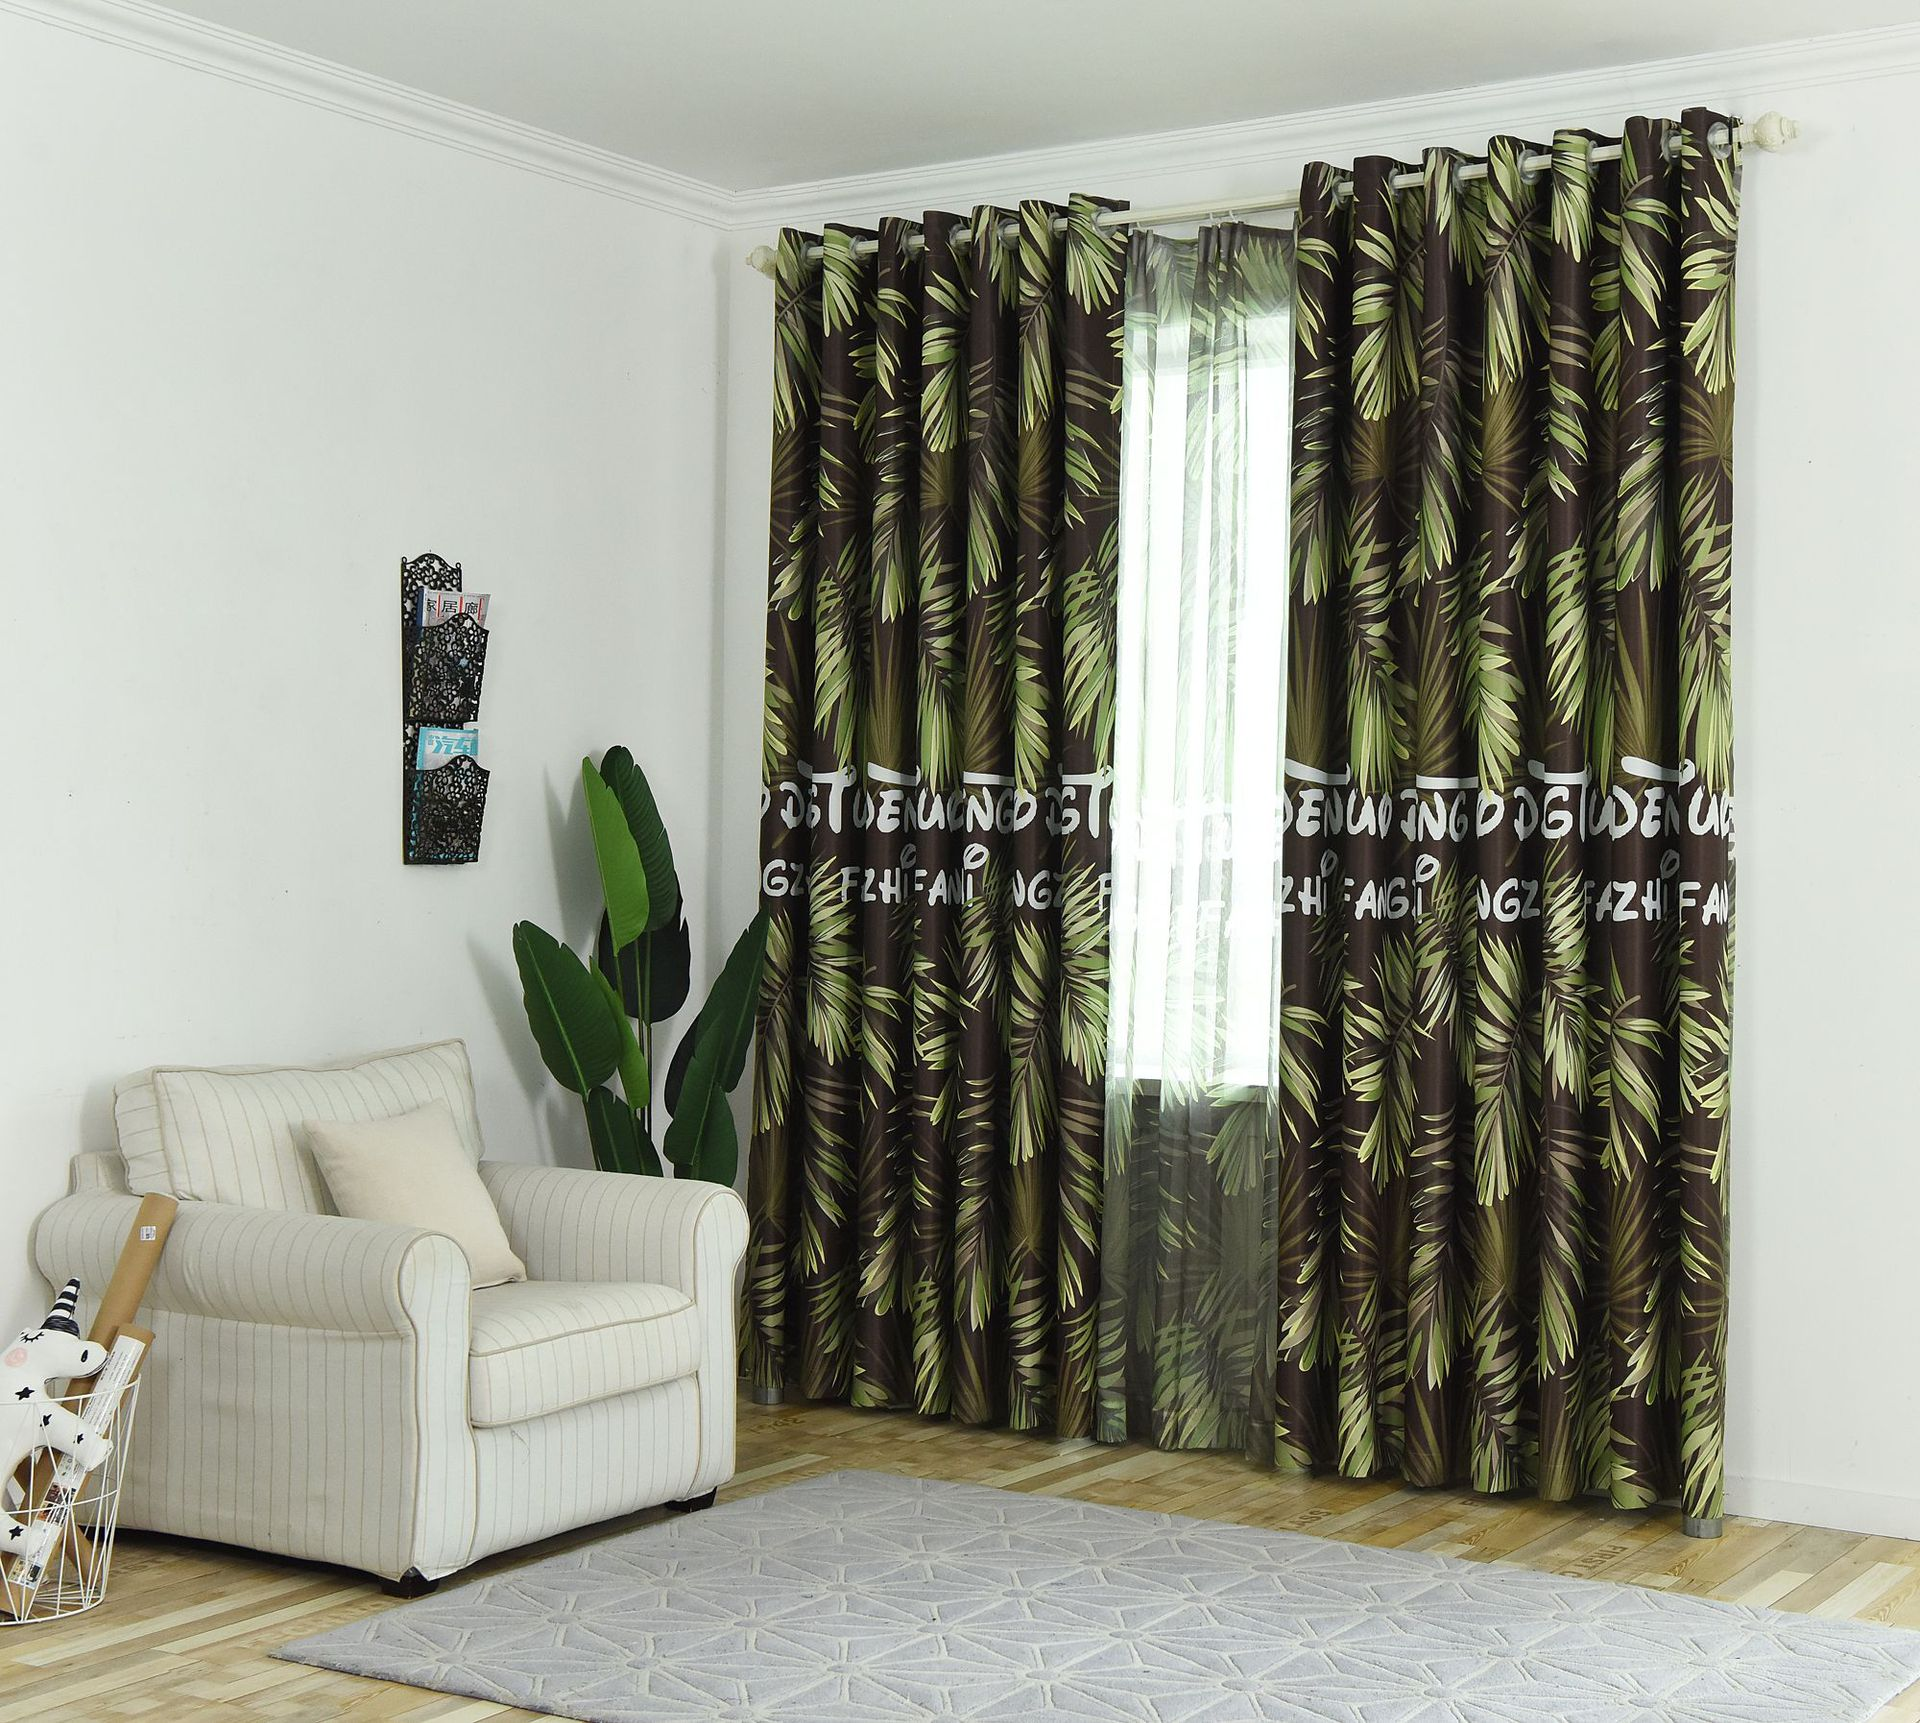 2019 Modern Blue Leaves Printed Blackout Curtains For Living Room Window Tulle And Curtains For Bedroom Child Drapes 85 Shading From Gor2don 20 97